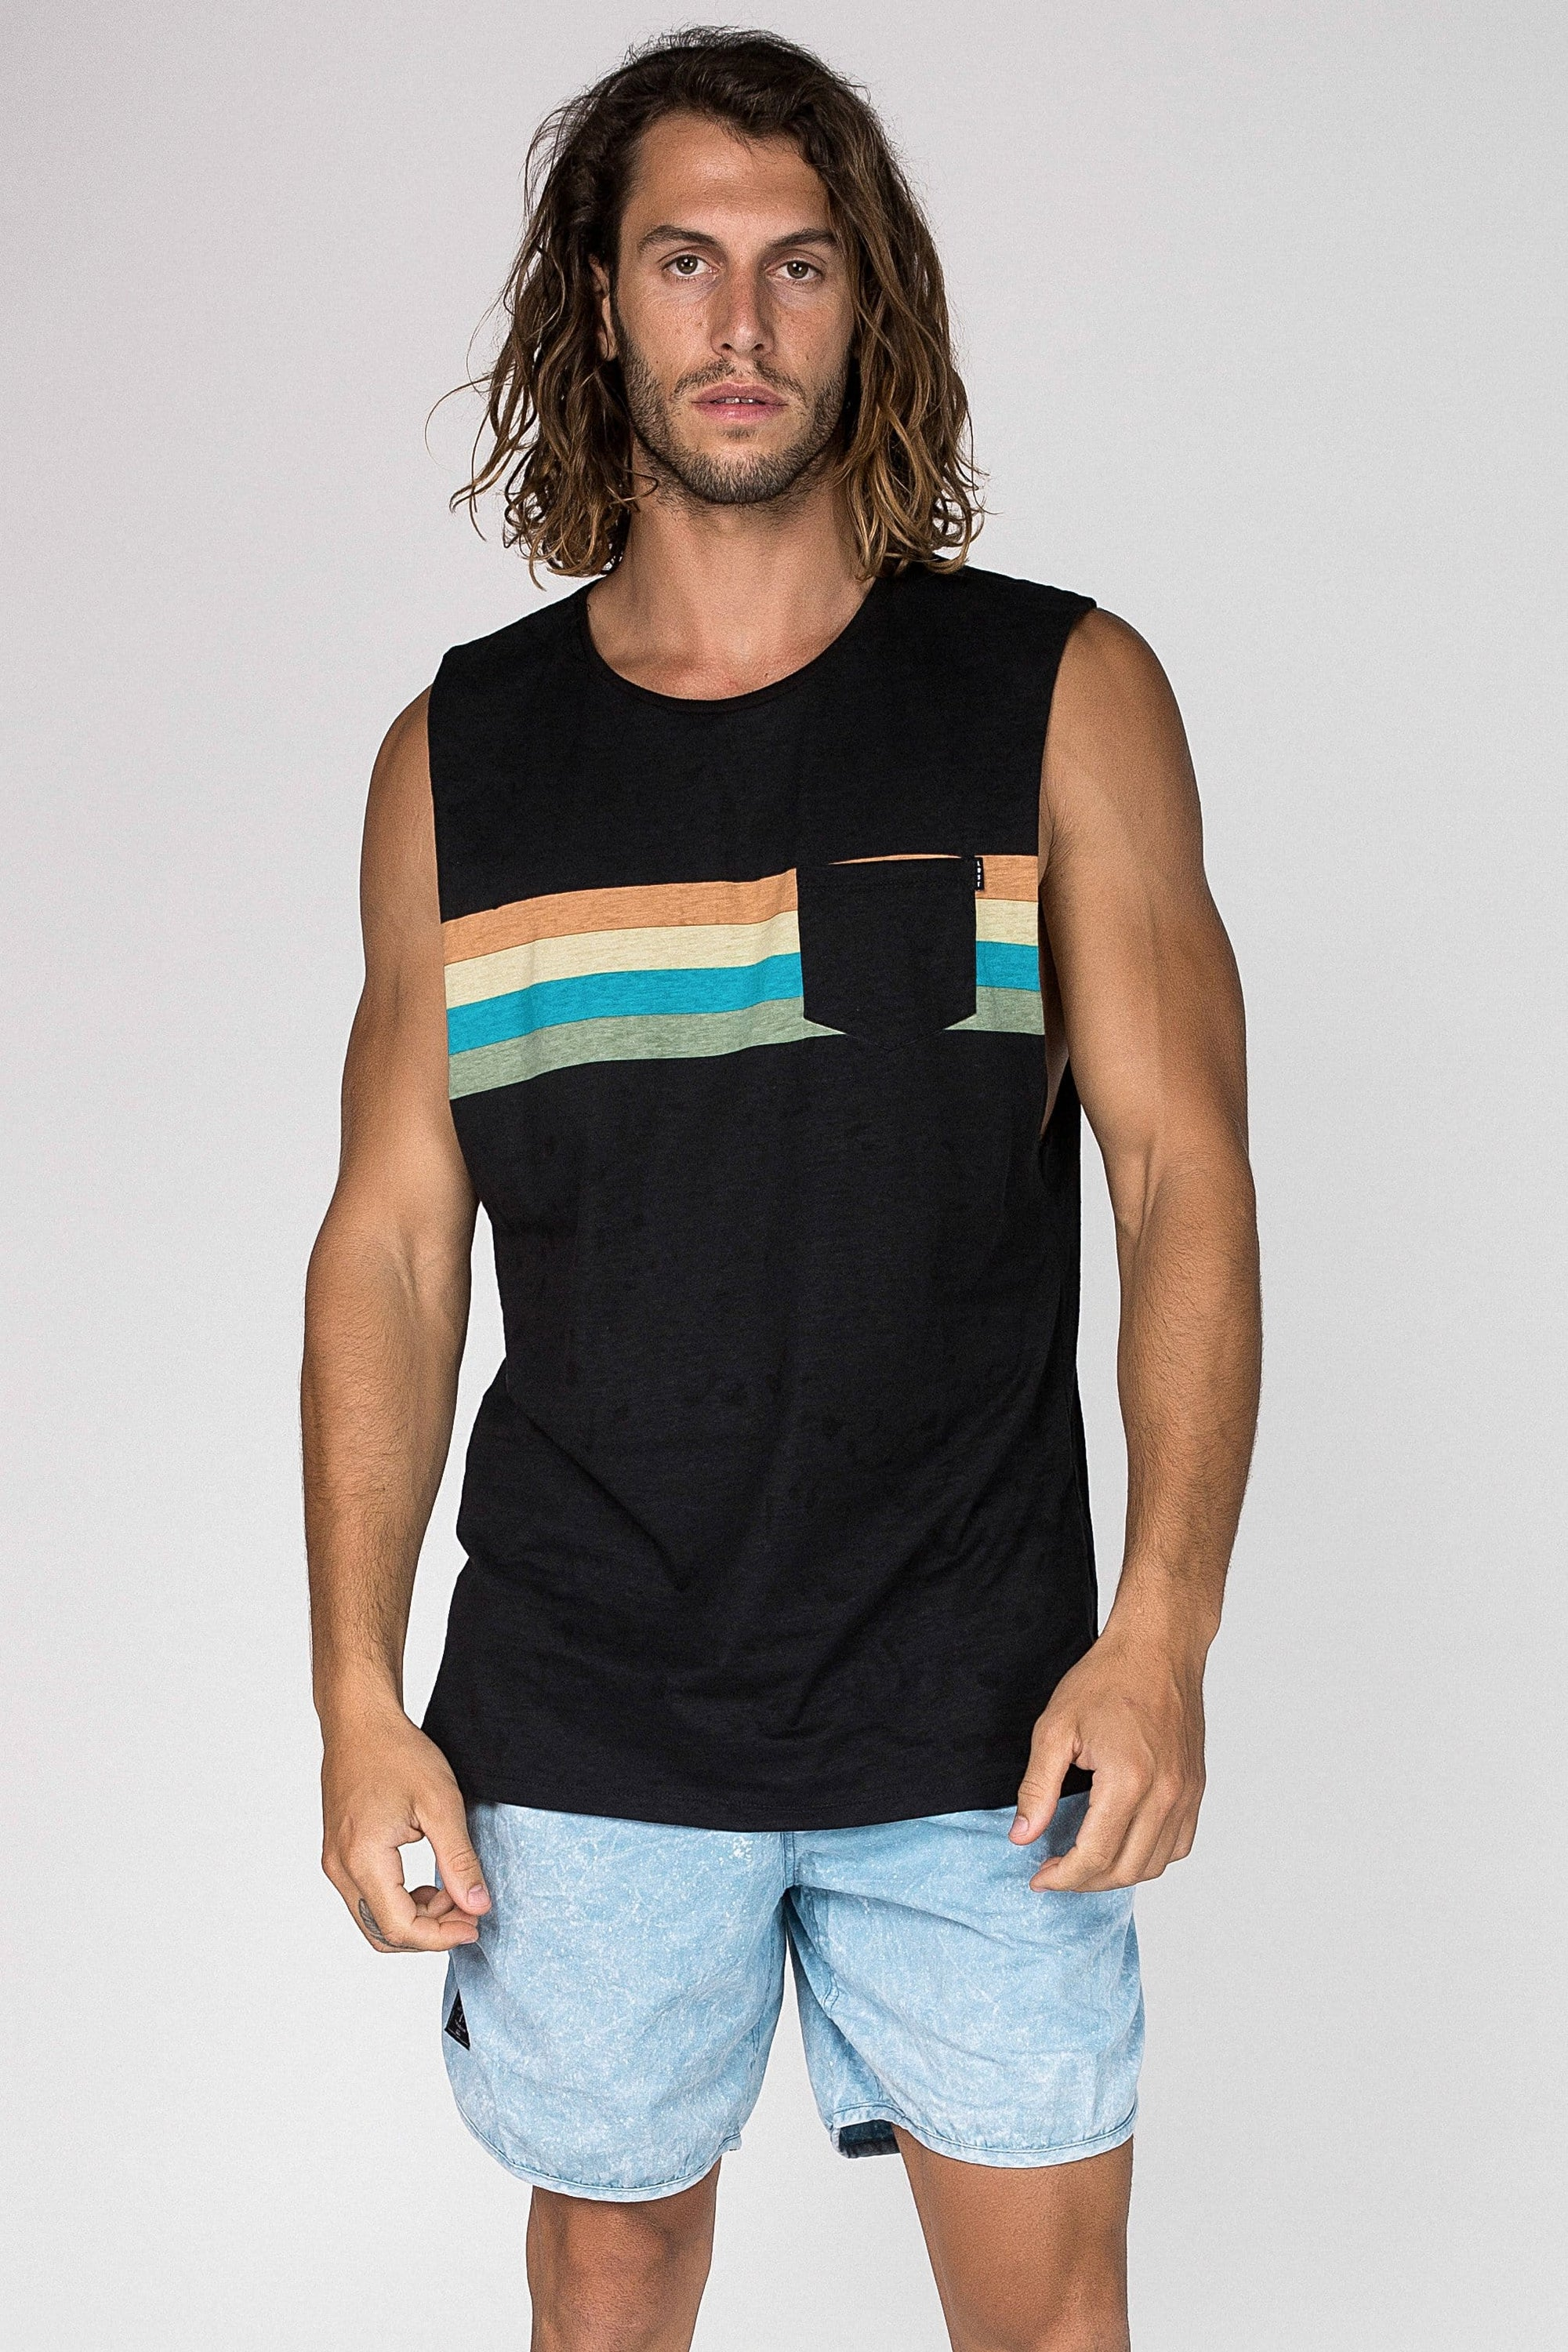 Graded Muscle - Mens Muscle Tank - LOST IN PARADISE